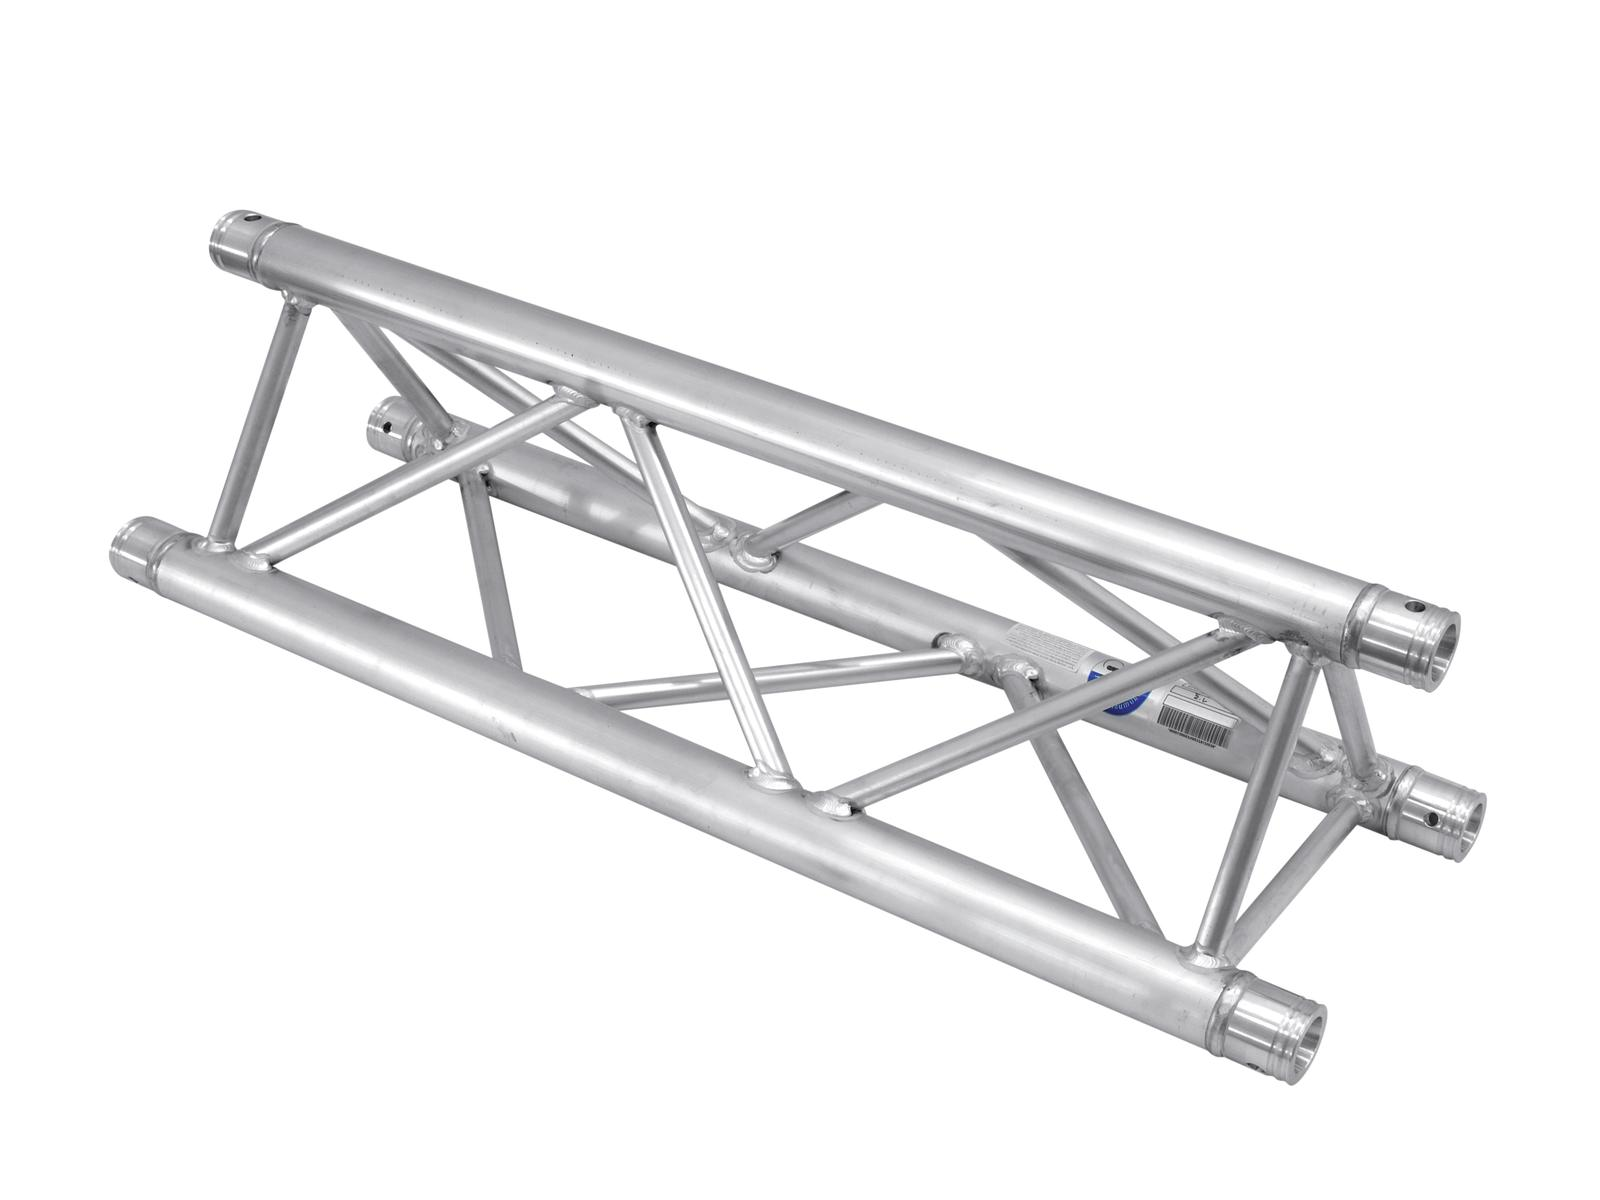 ALUTRUSS TRILOCK E-GL33 710 3 vie traverse